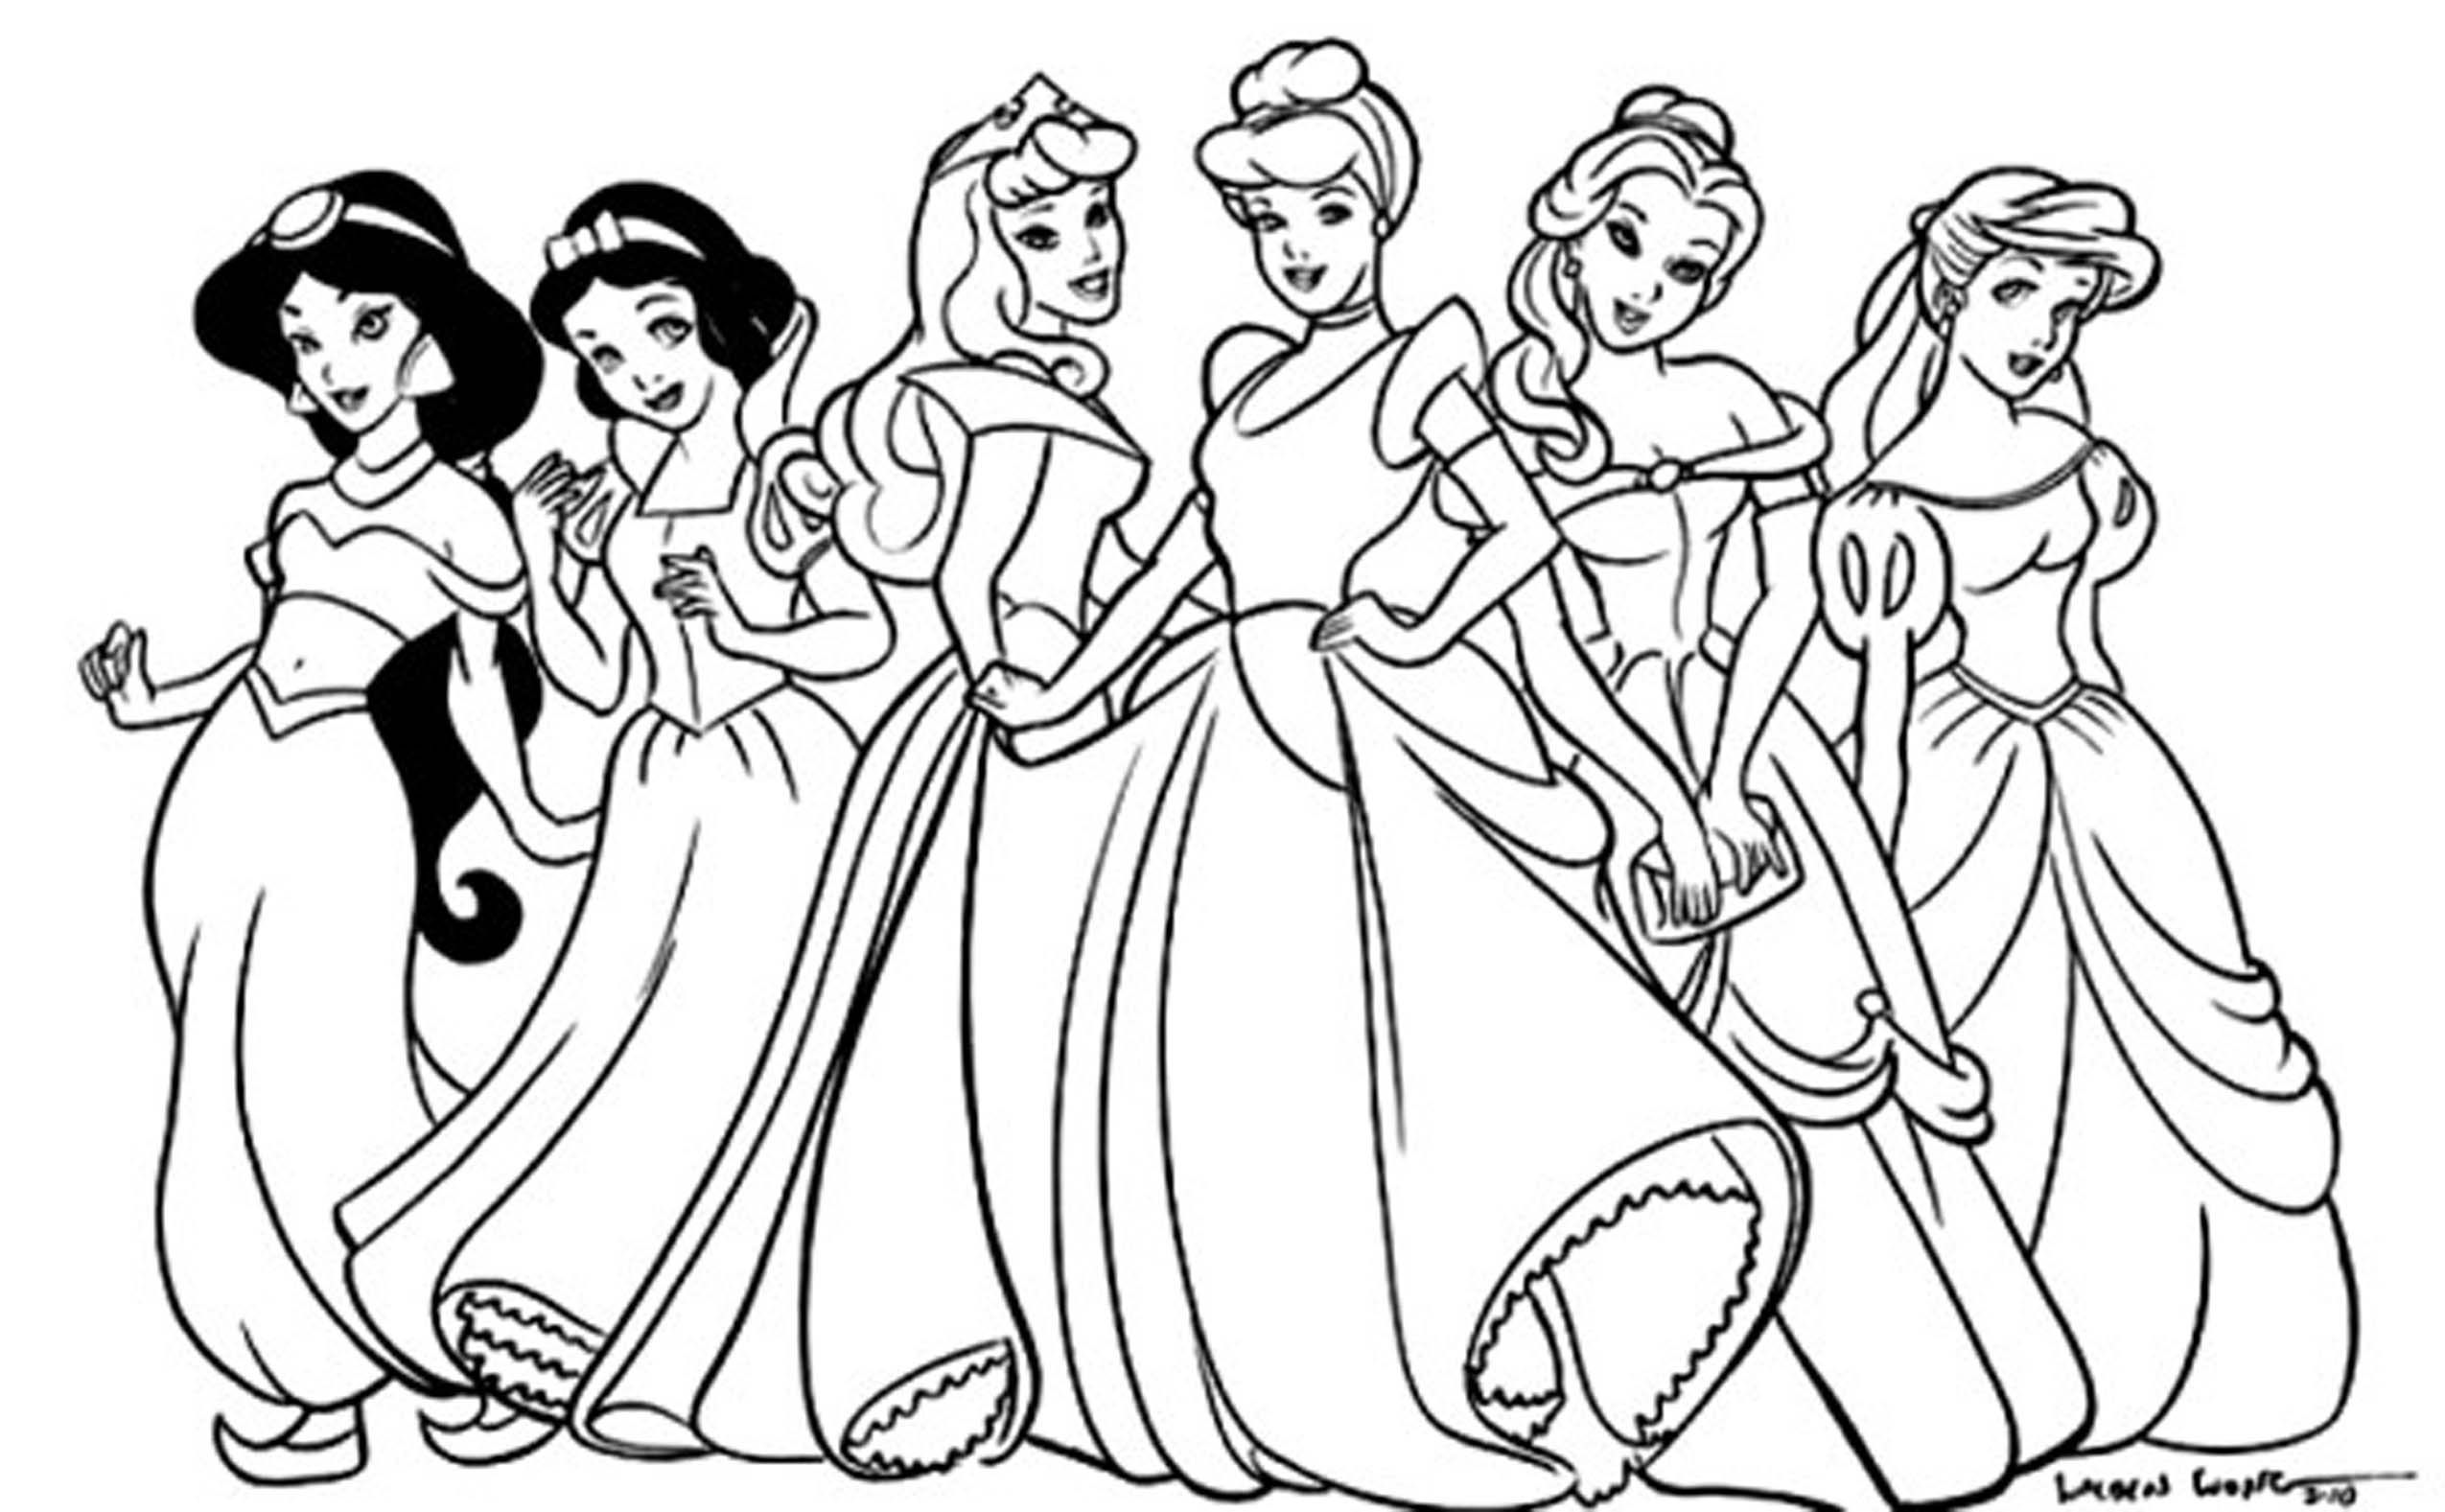 image regarding Disney Princess Printable Coloring Pages identify Disney Princess Printable Colouring Internet pages Coloring Web pages